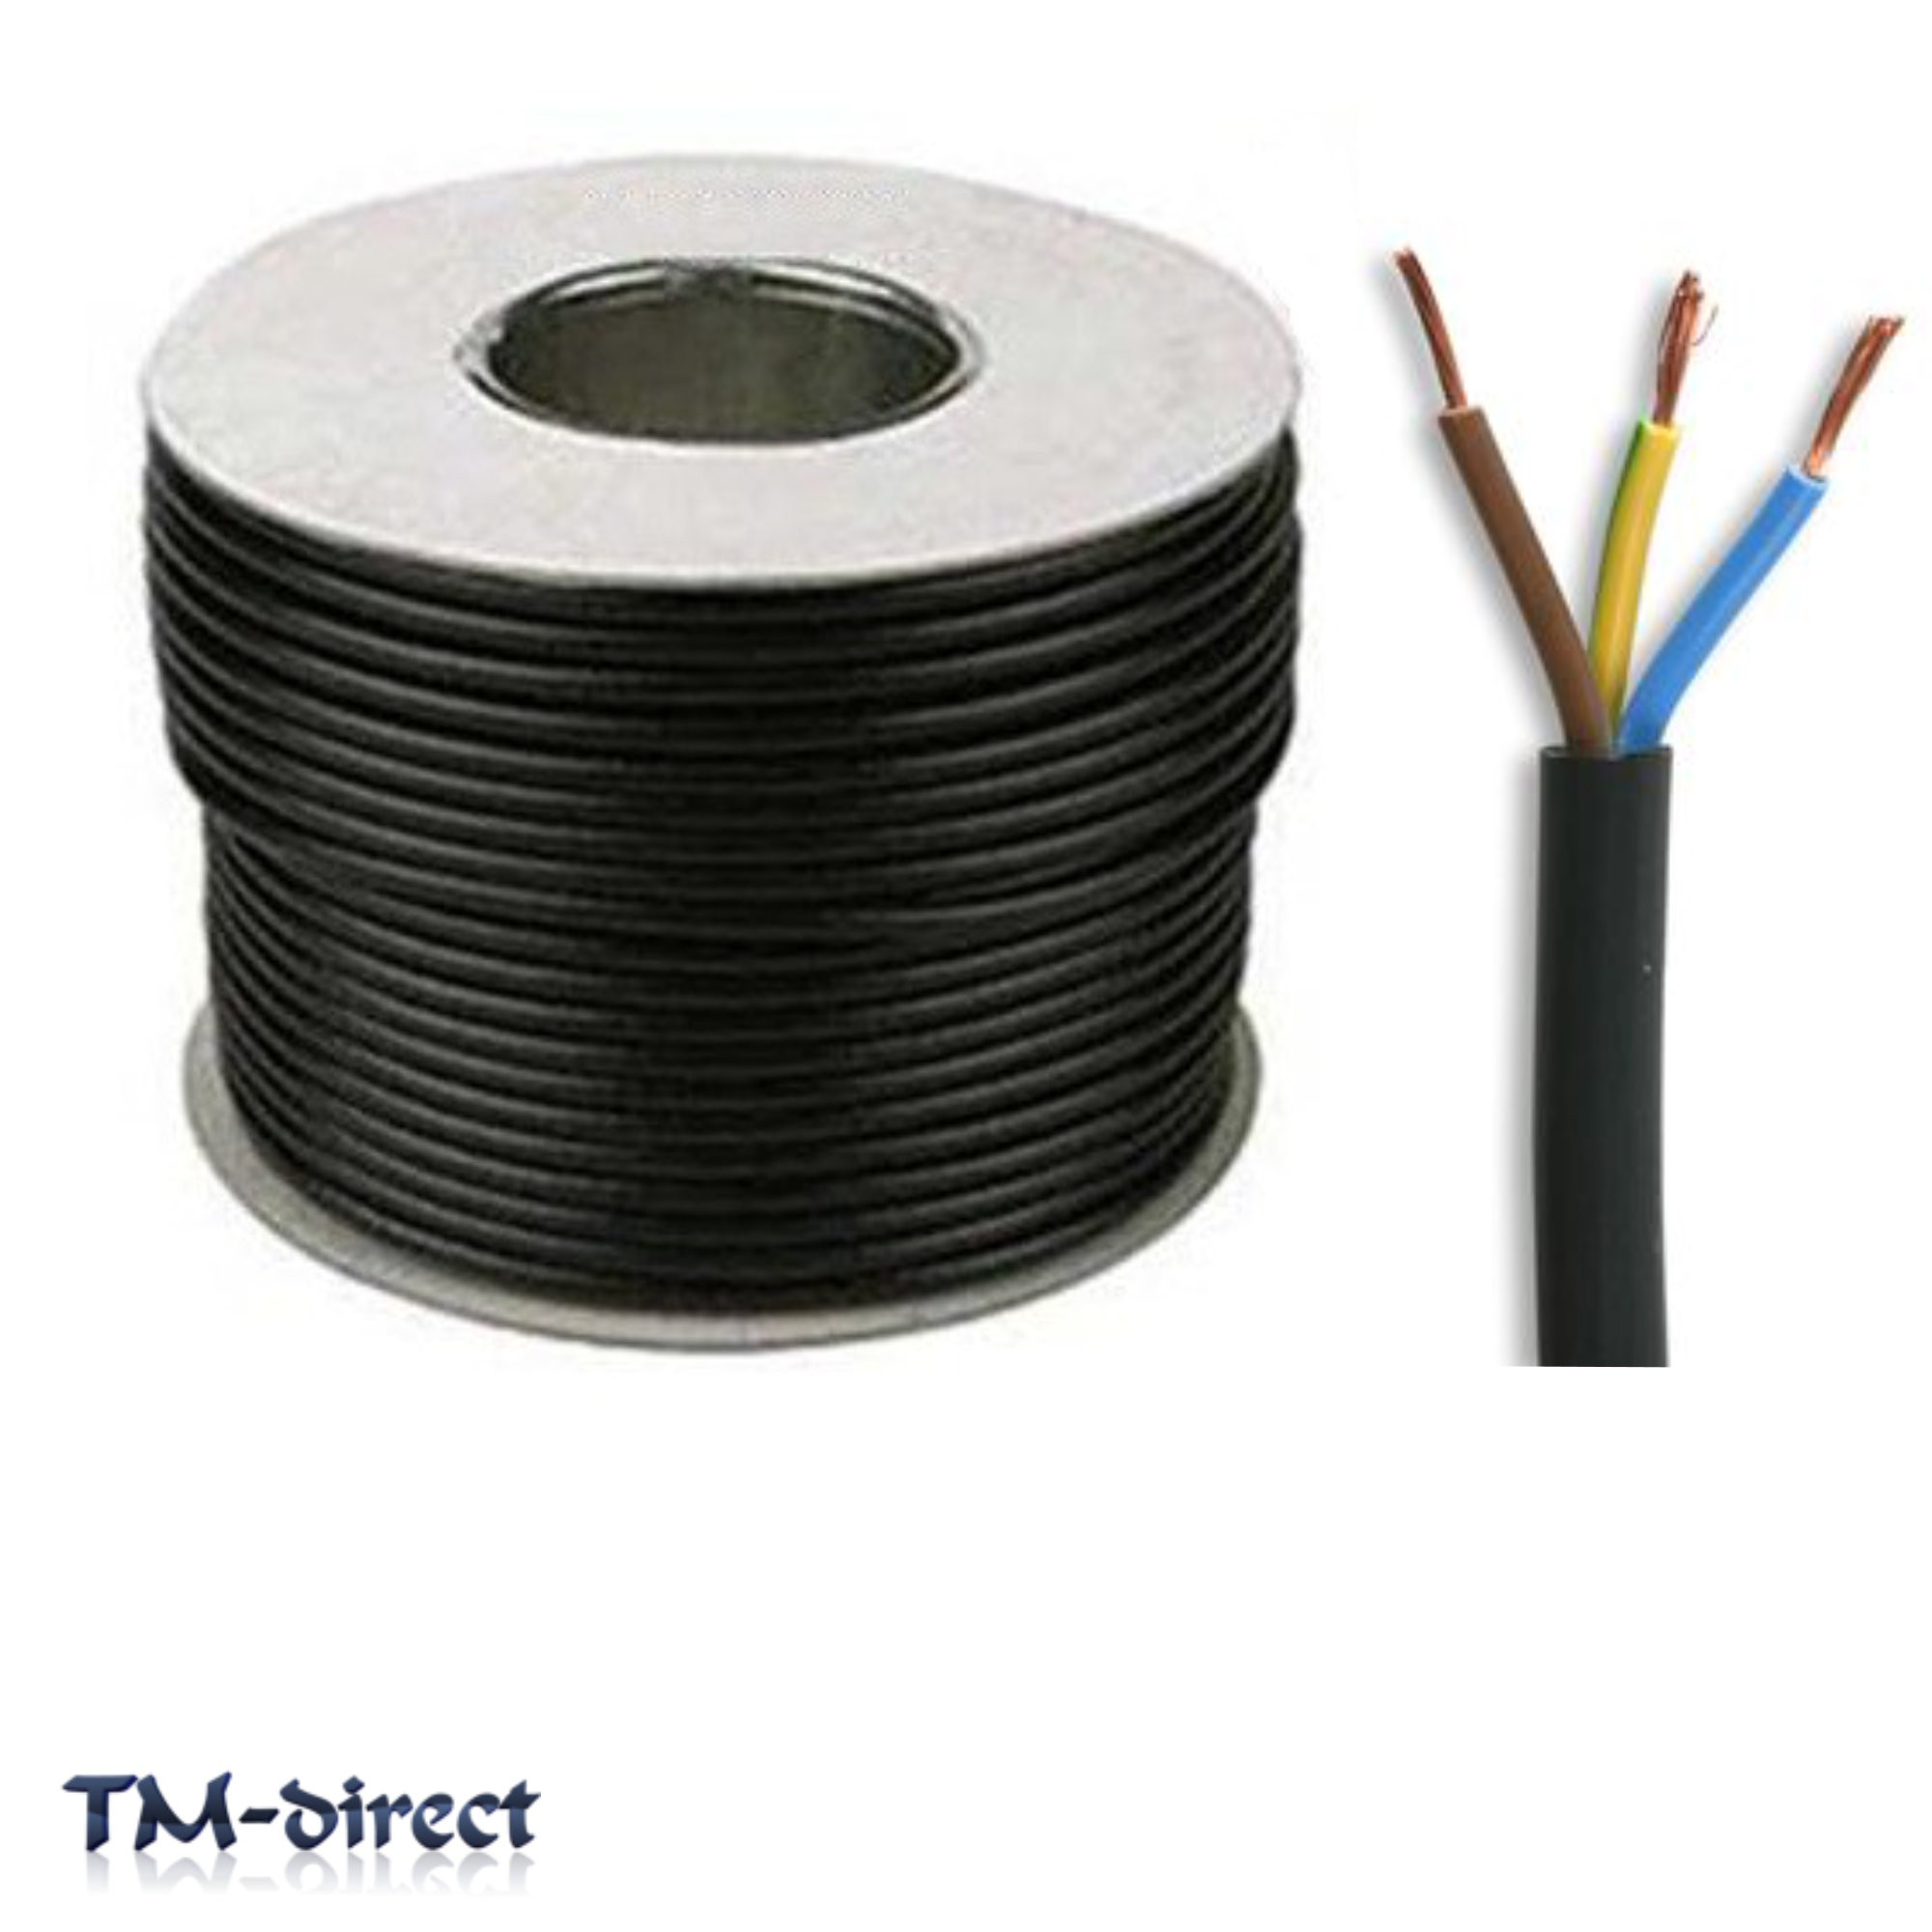 3183Y 3 Core 2.5mm Round Black Electrical Cable Flex Wire BY THE METER